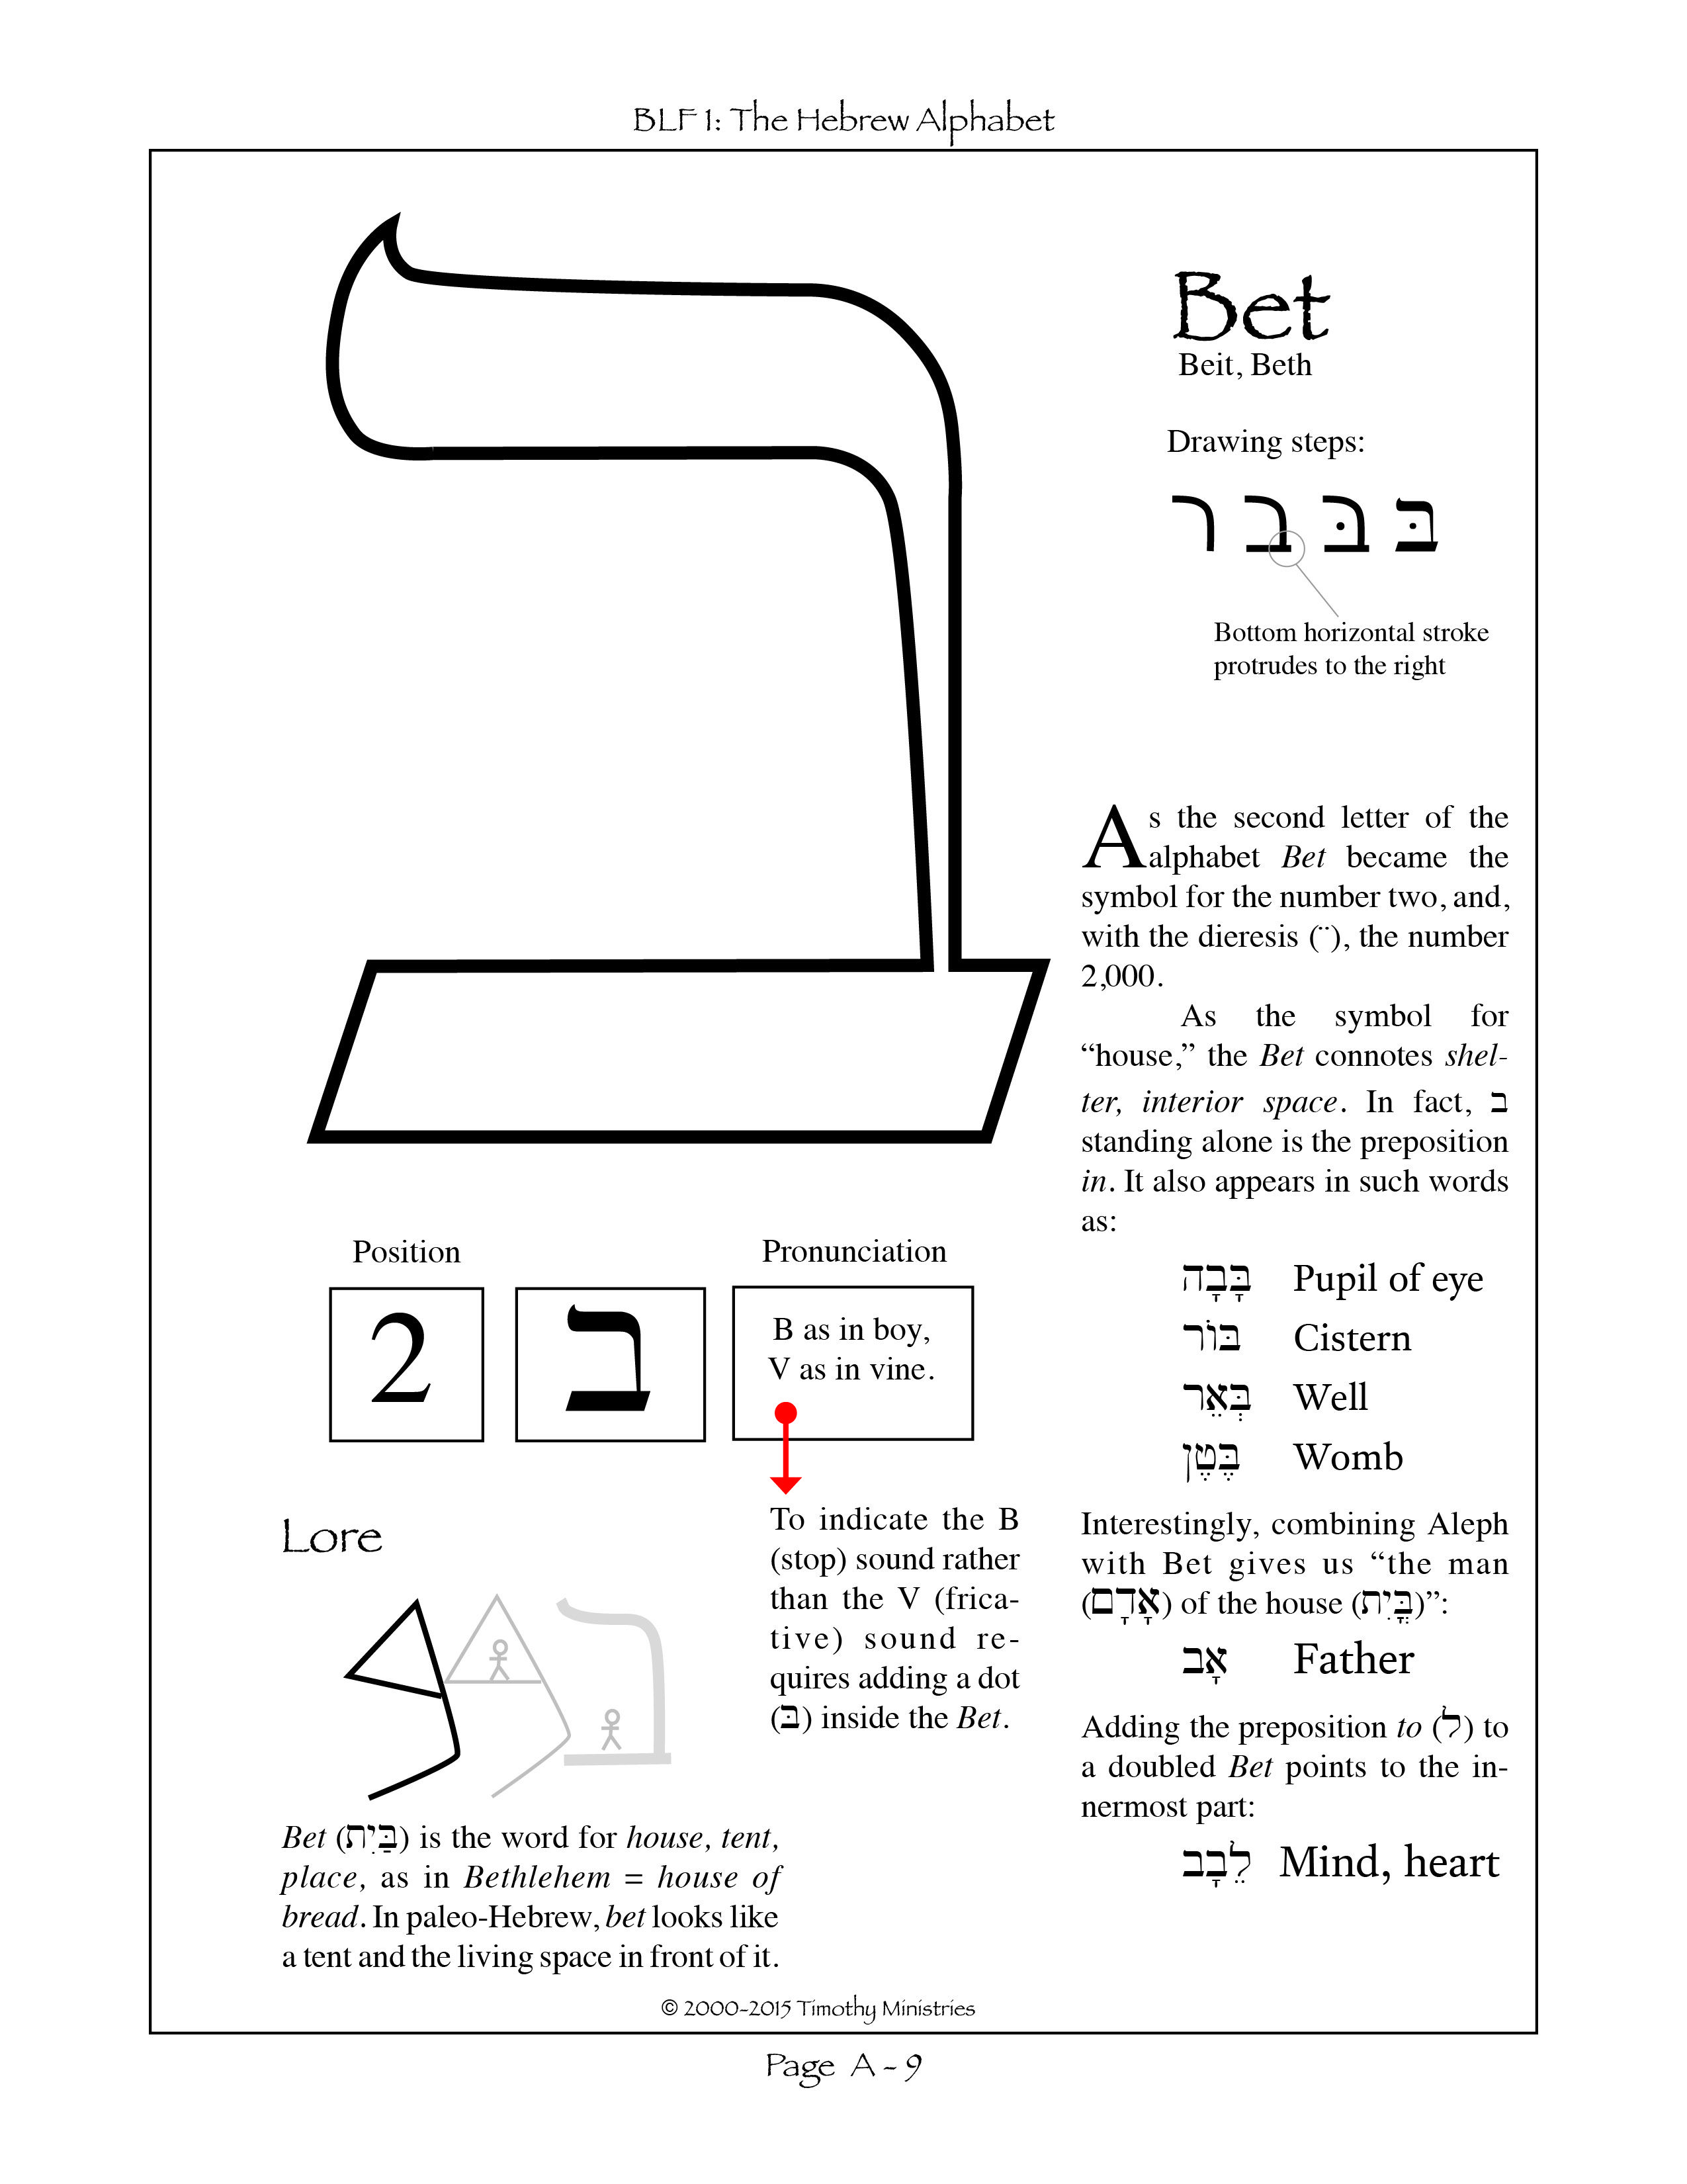 The second letter of the Hebrew consonantal alphabet